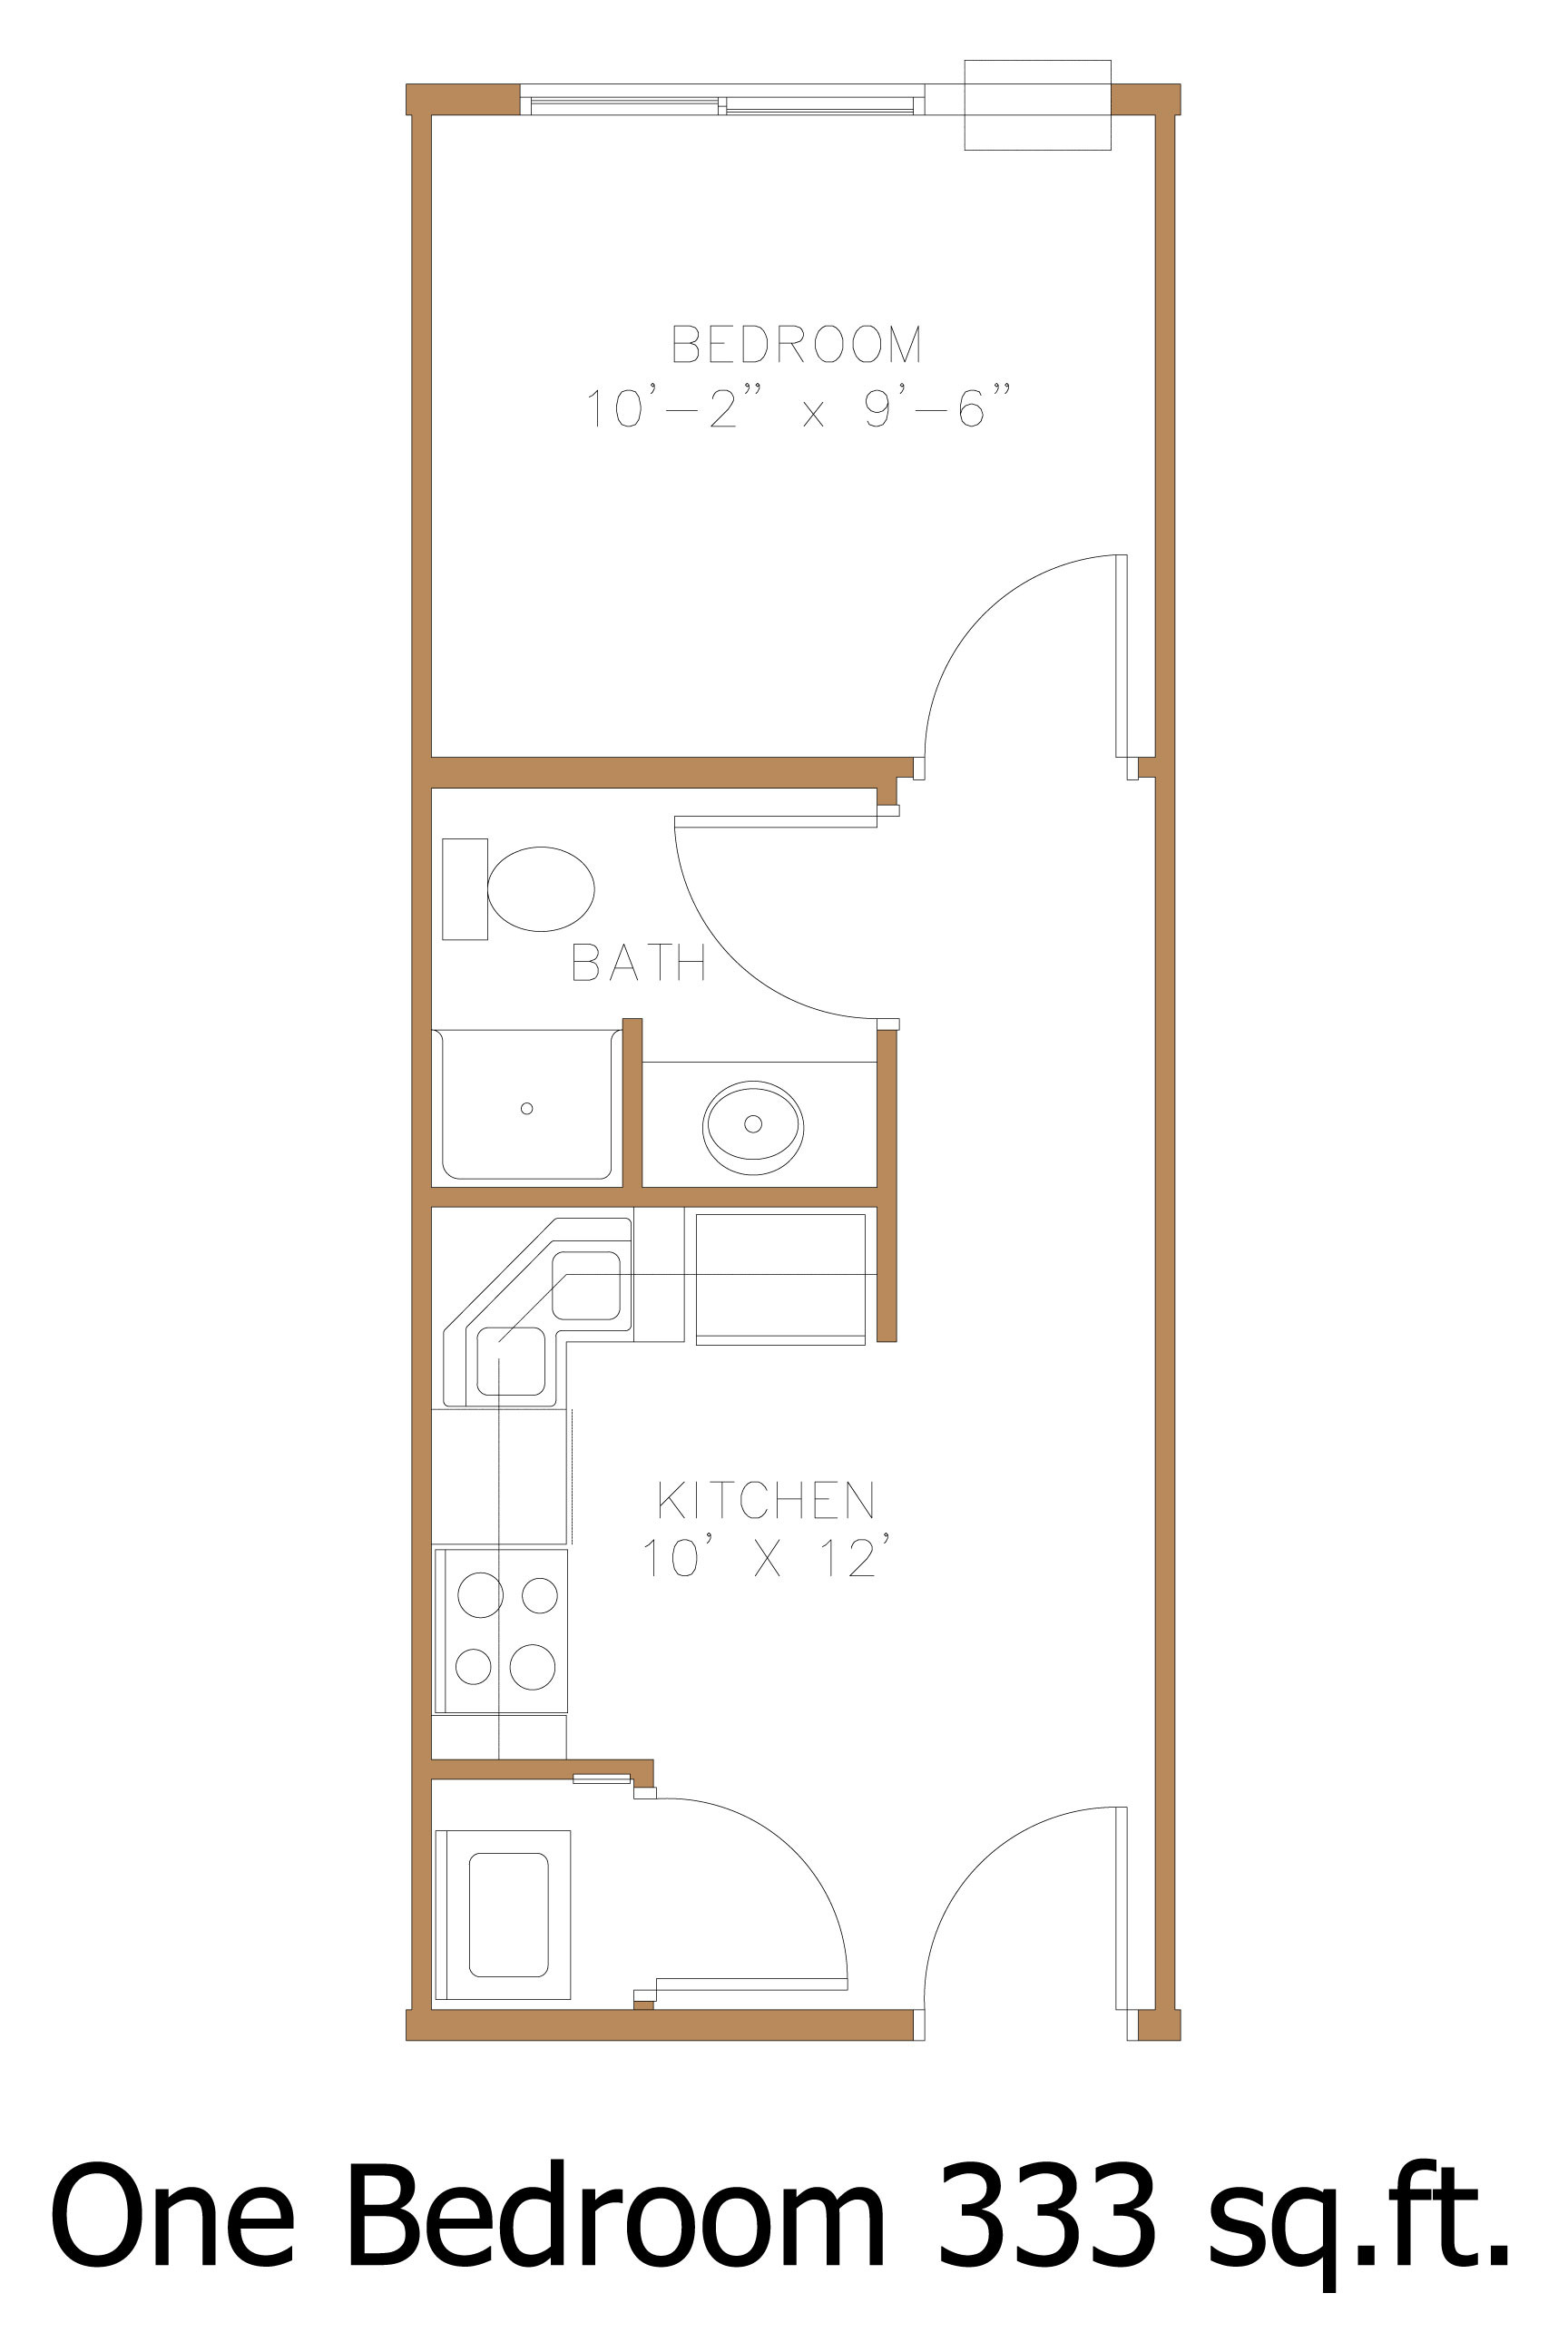 1 Bedroom / 1 Bathroom Center Units. Harford One Bedroom Apartment. Click  For Zoomed In Floor Plan